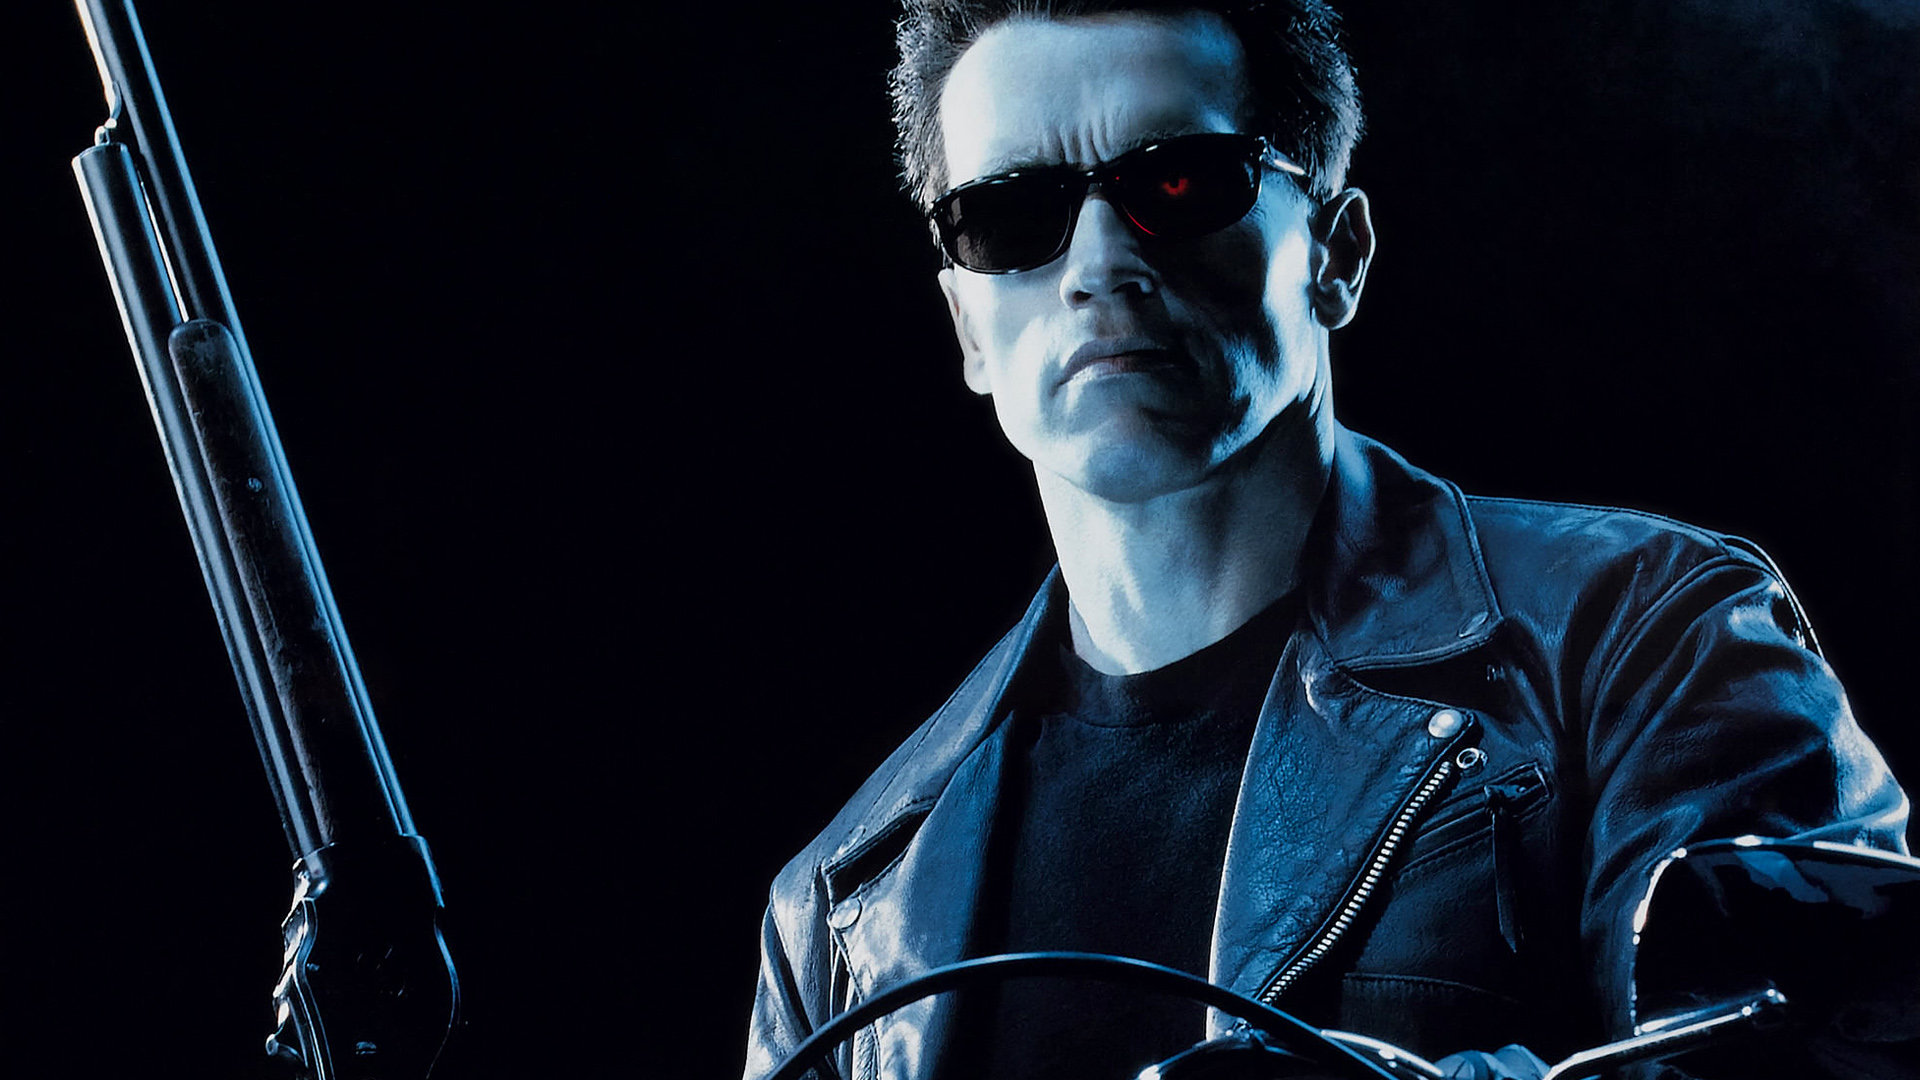 terminator_2___ill_be_back-Wallpaper.jpg